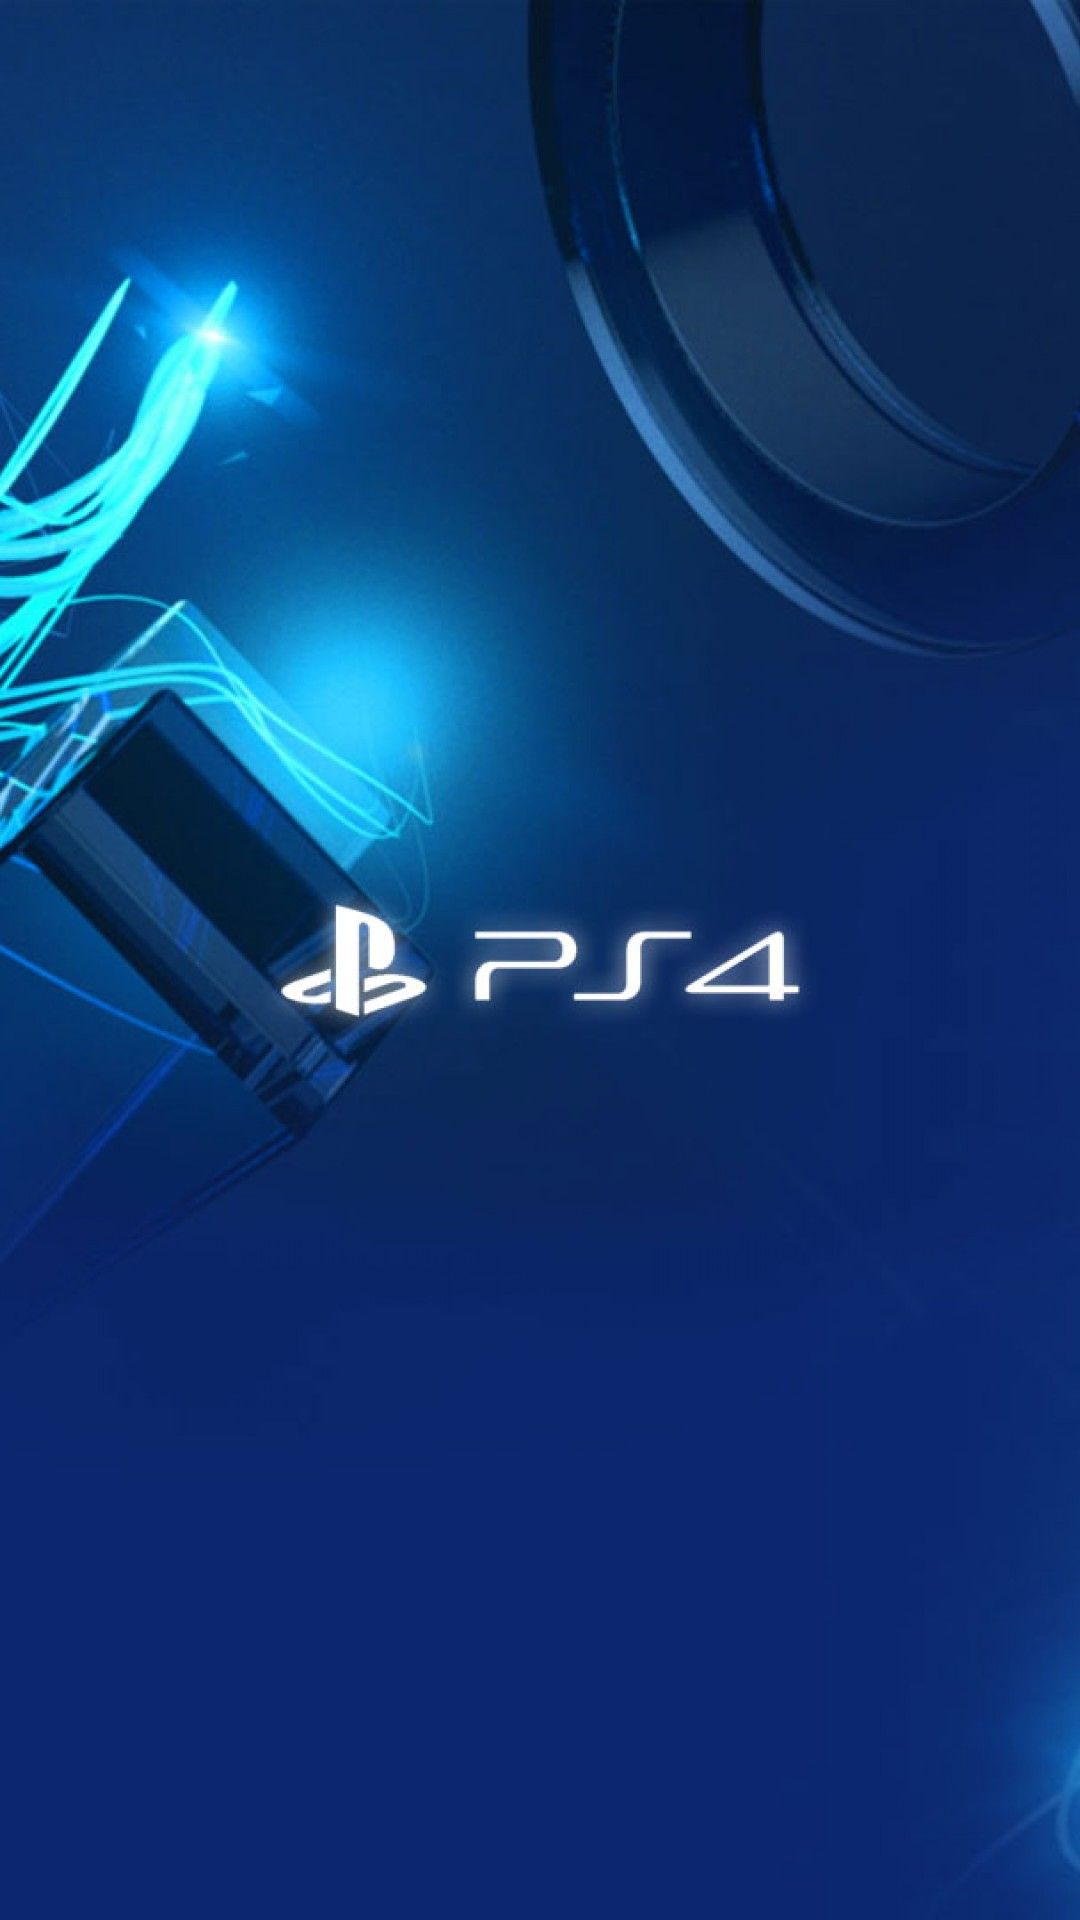 Ps4 Iphone Wallpapers Top Free Ps4 Iphone Backgrounds Wallpaperaccess